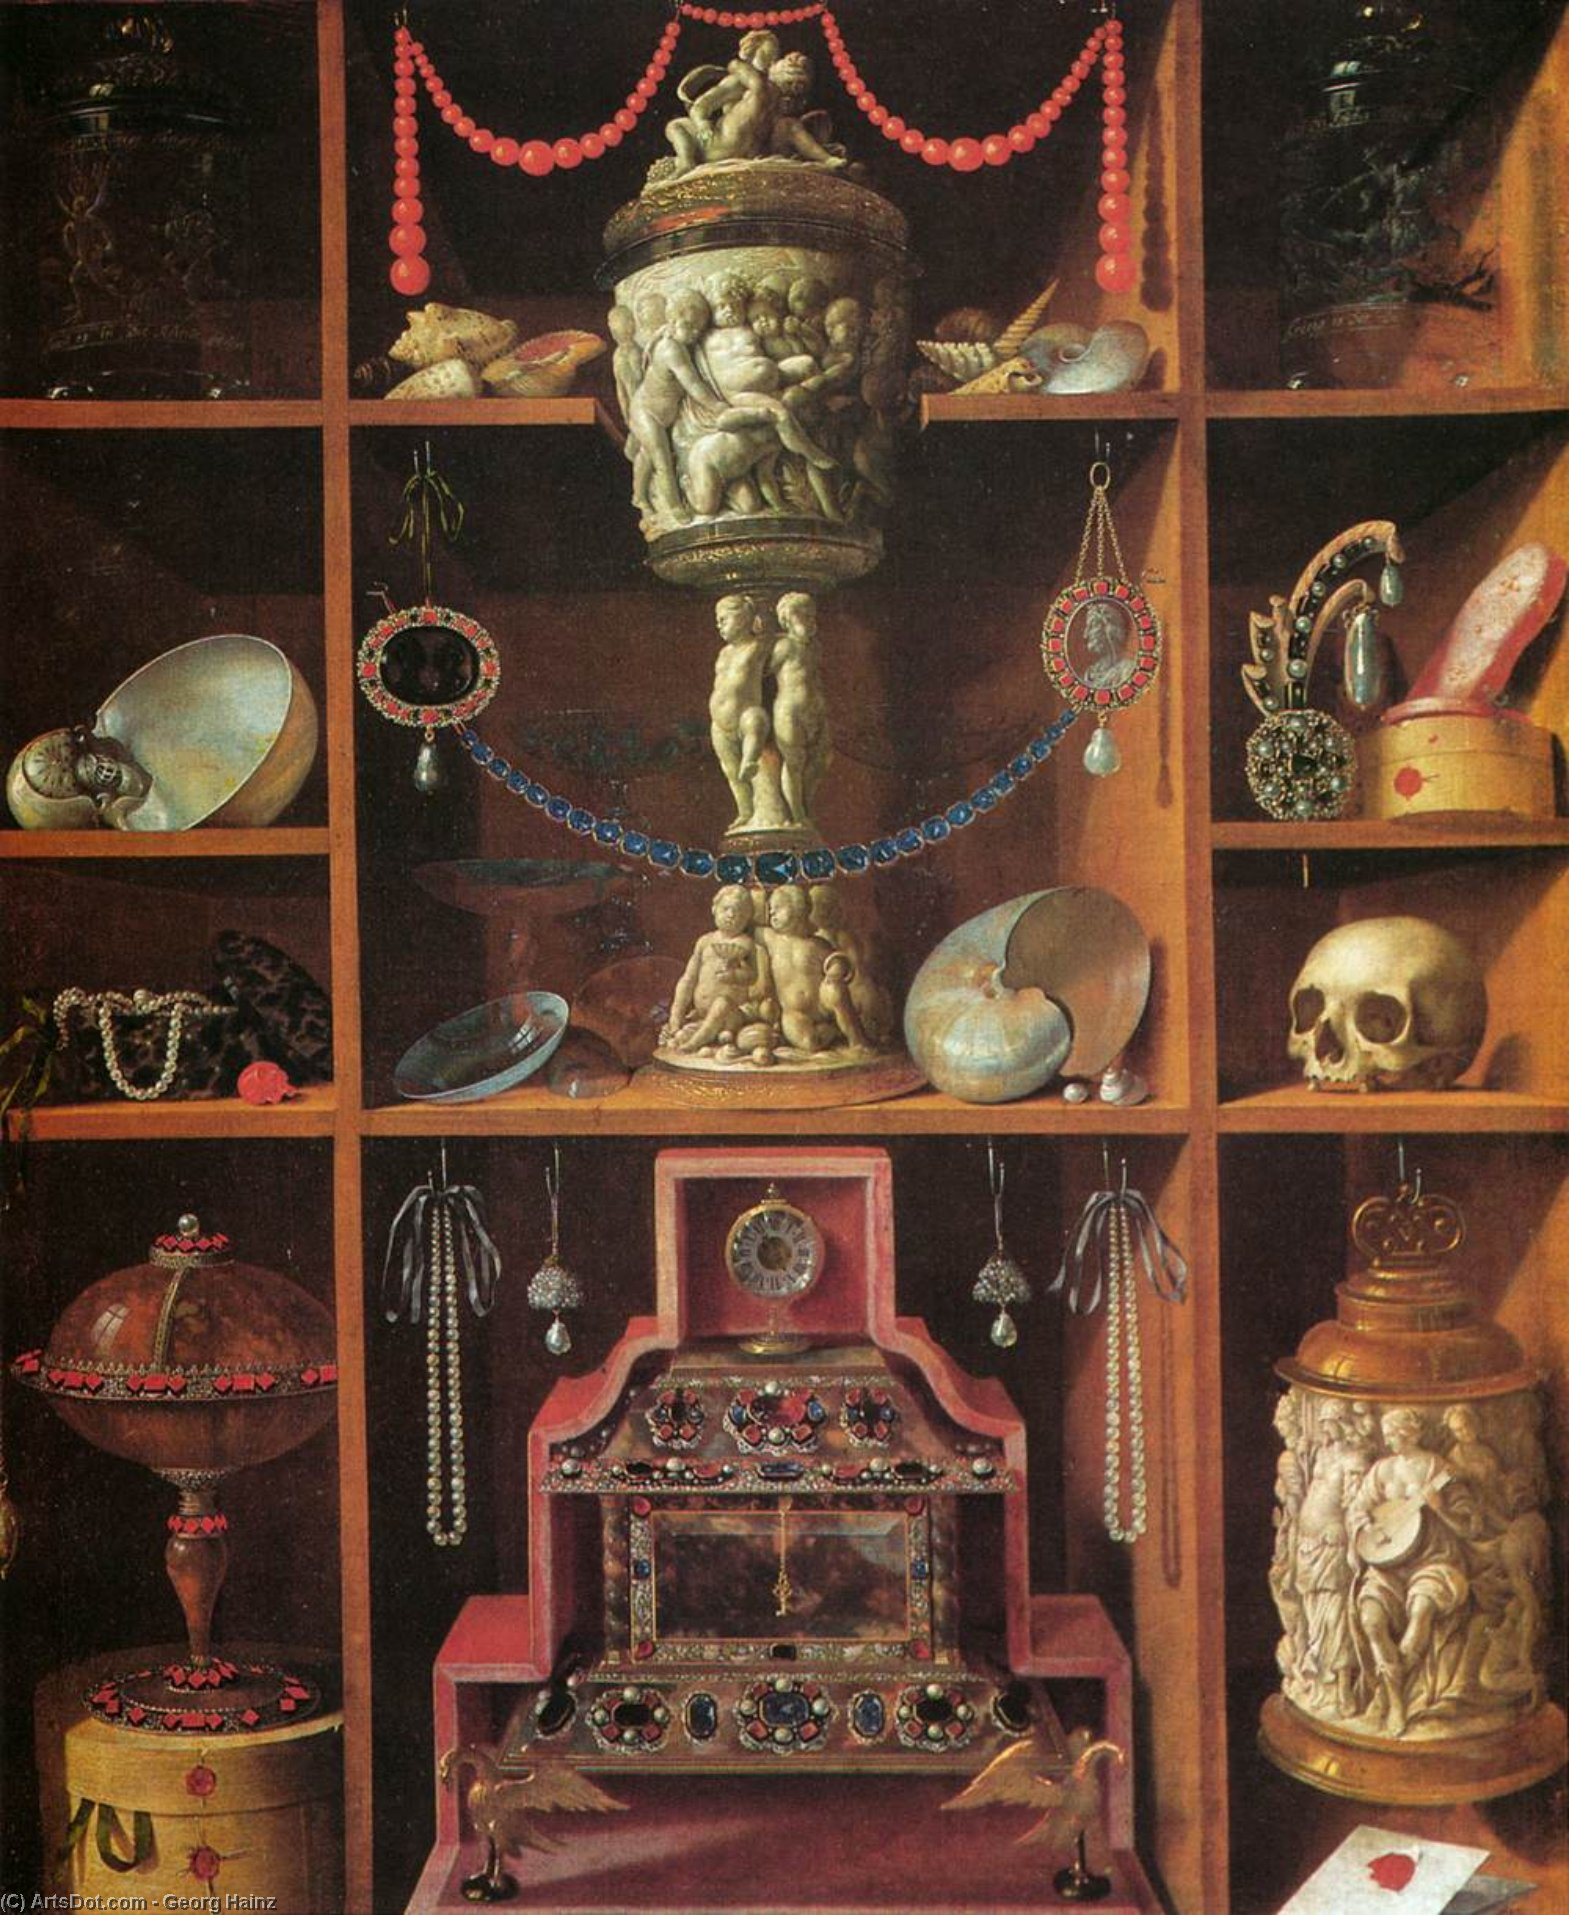 Wikioo.org - The Encyclopedia of Fine Arts - Painting, Artwork by Georg Hainz - Cabinets of Curiosities